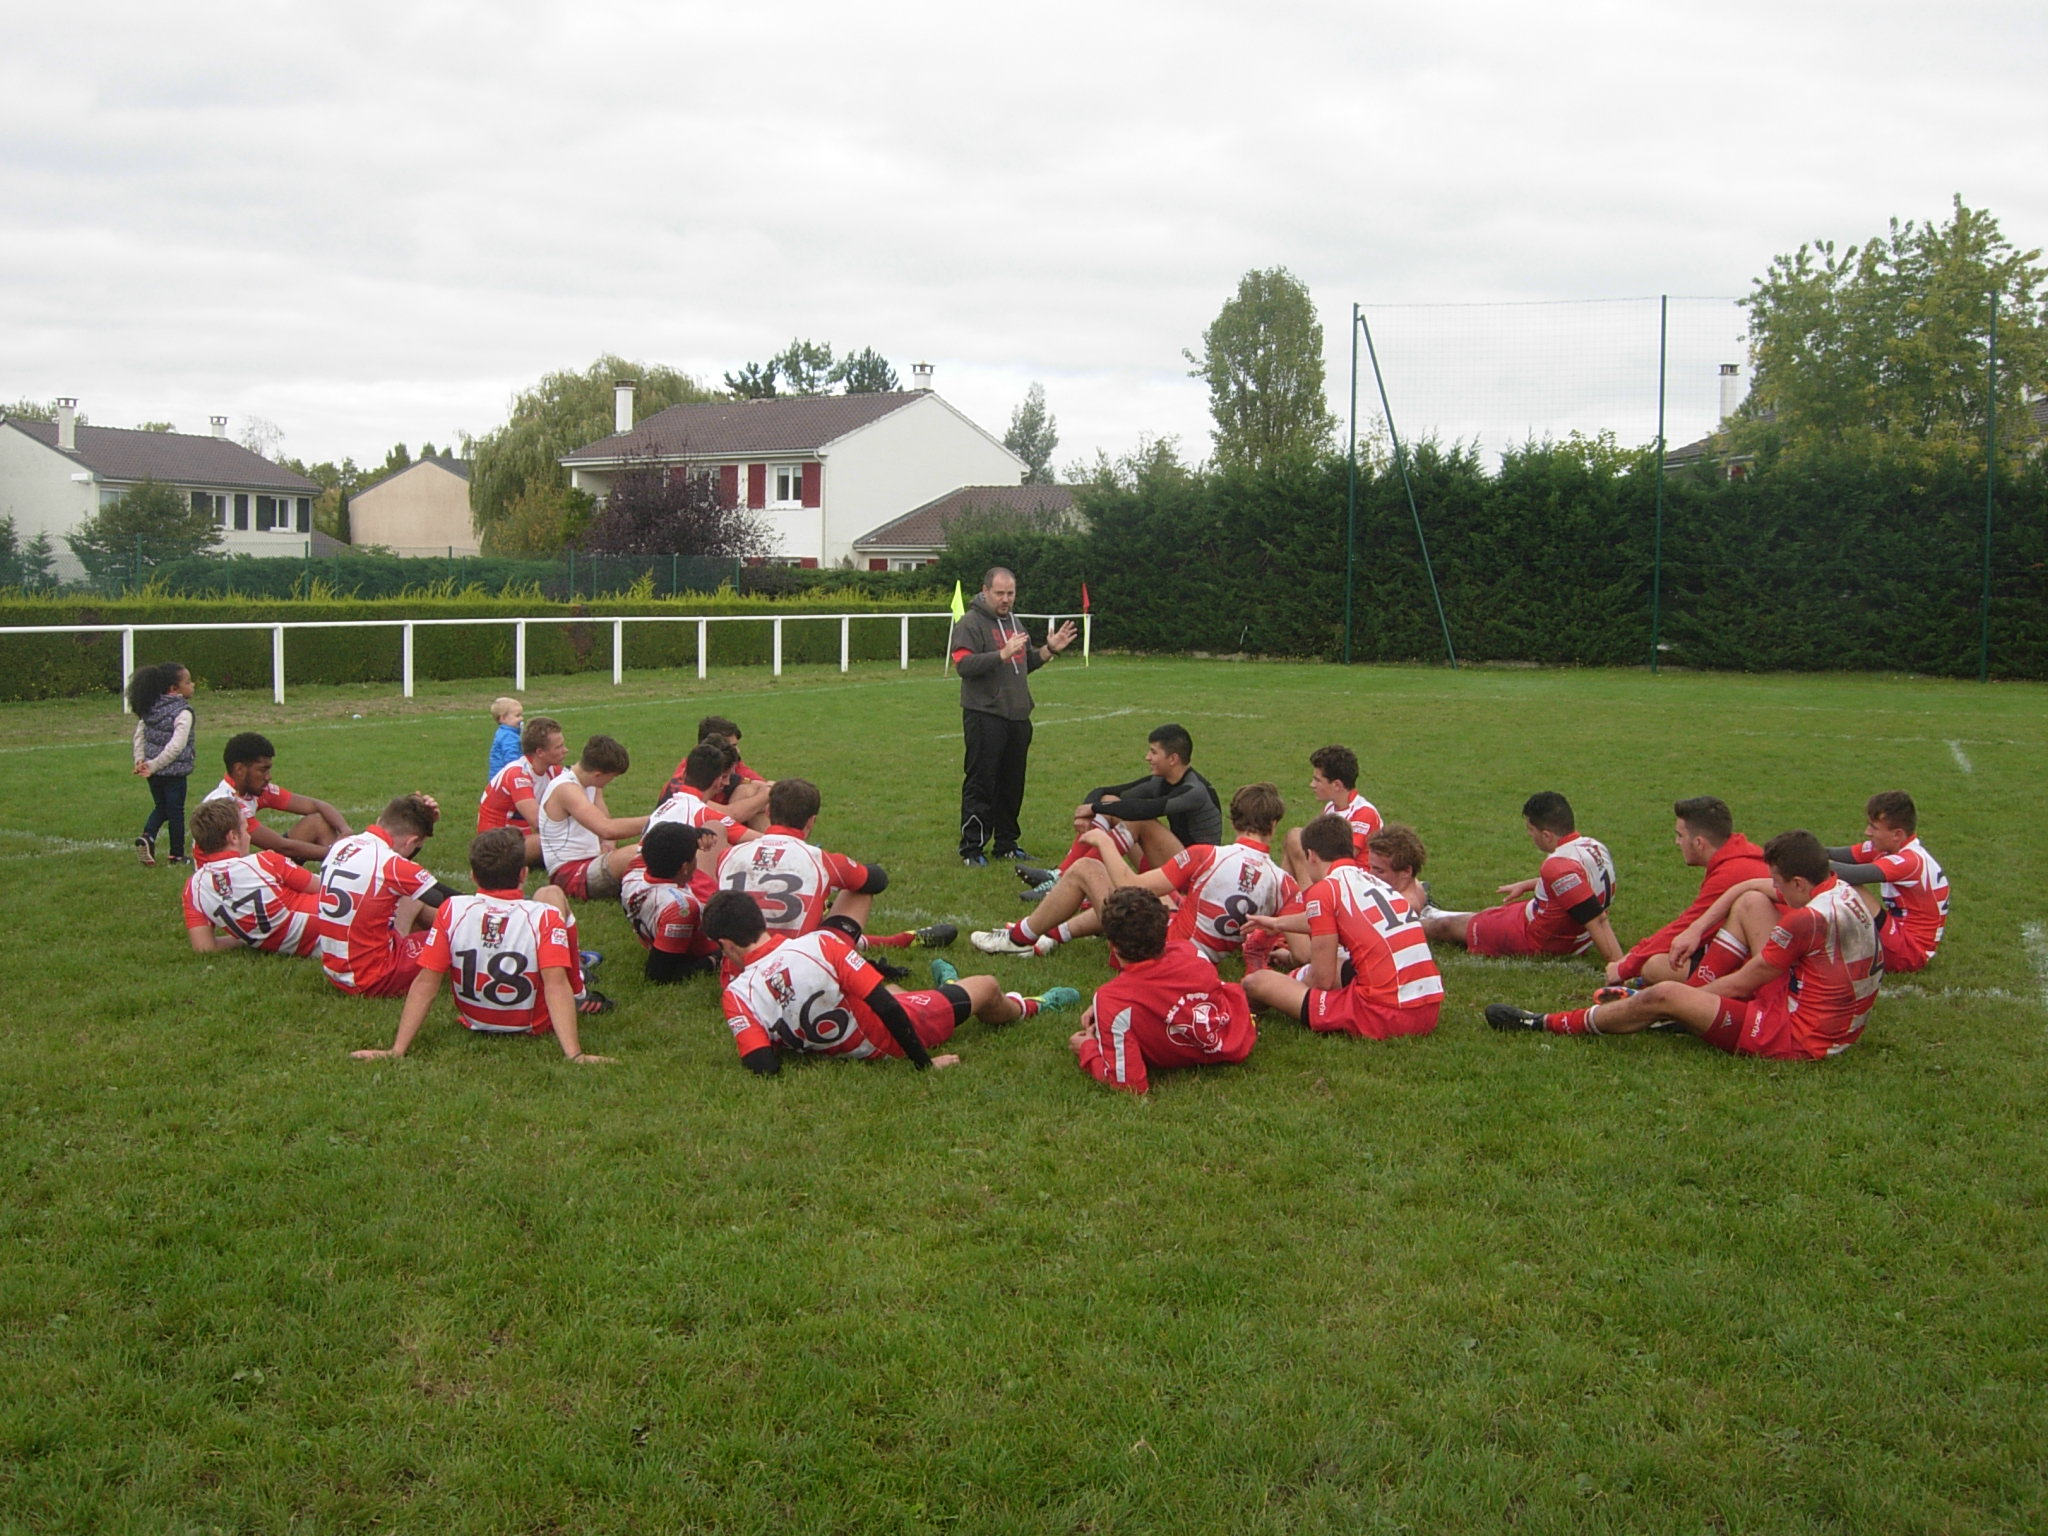 Clamart Rugby 92 - Victoire des juniors contre Montesson-5